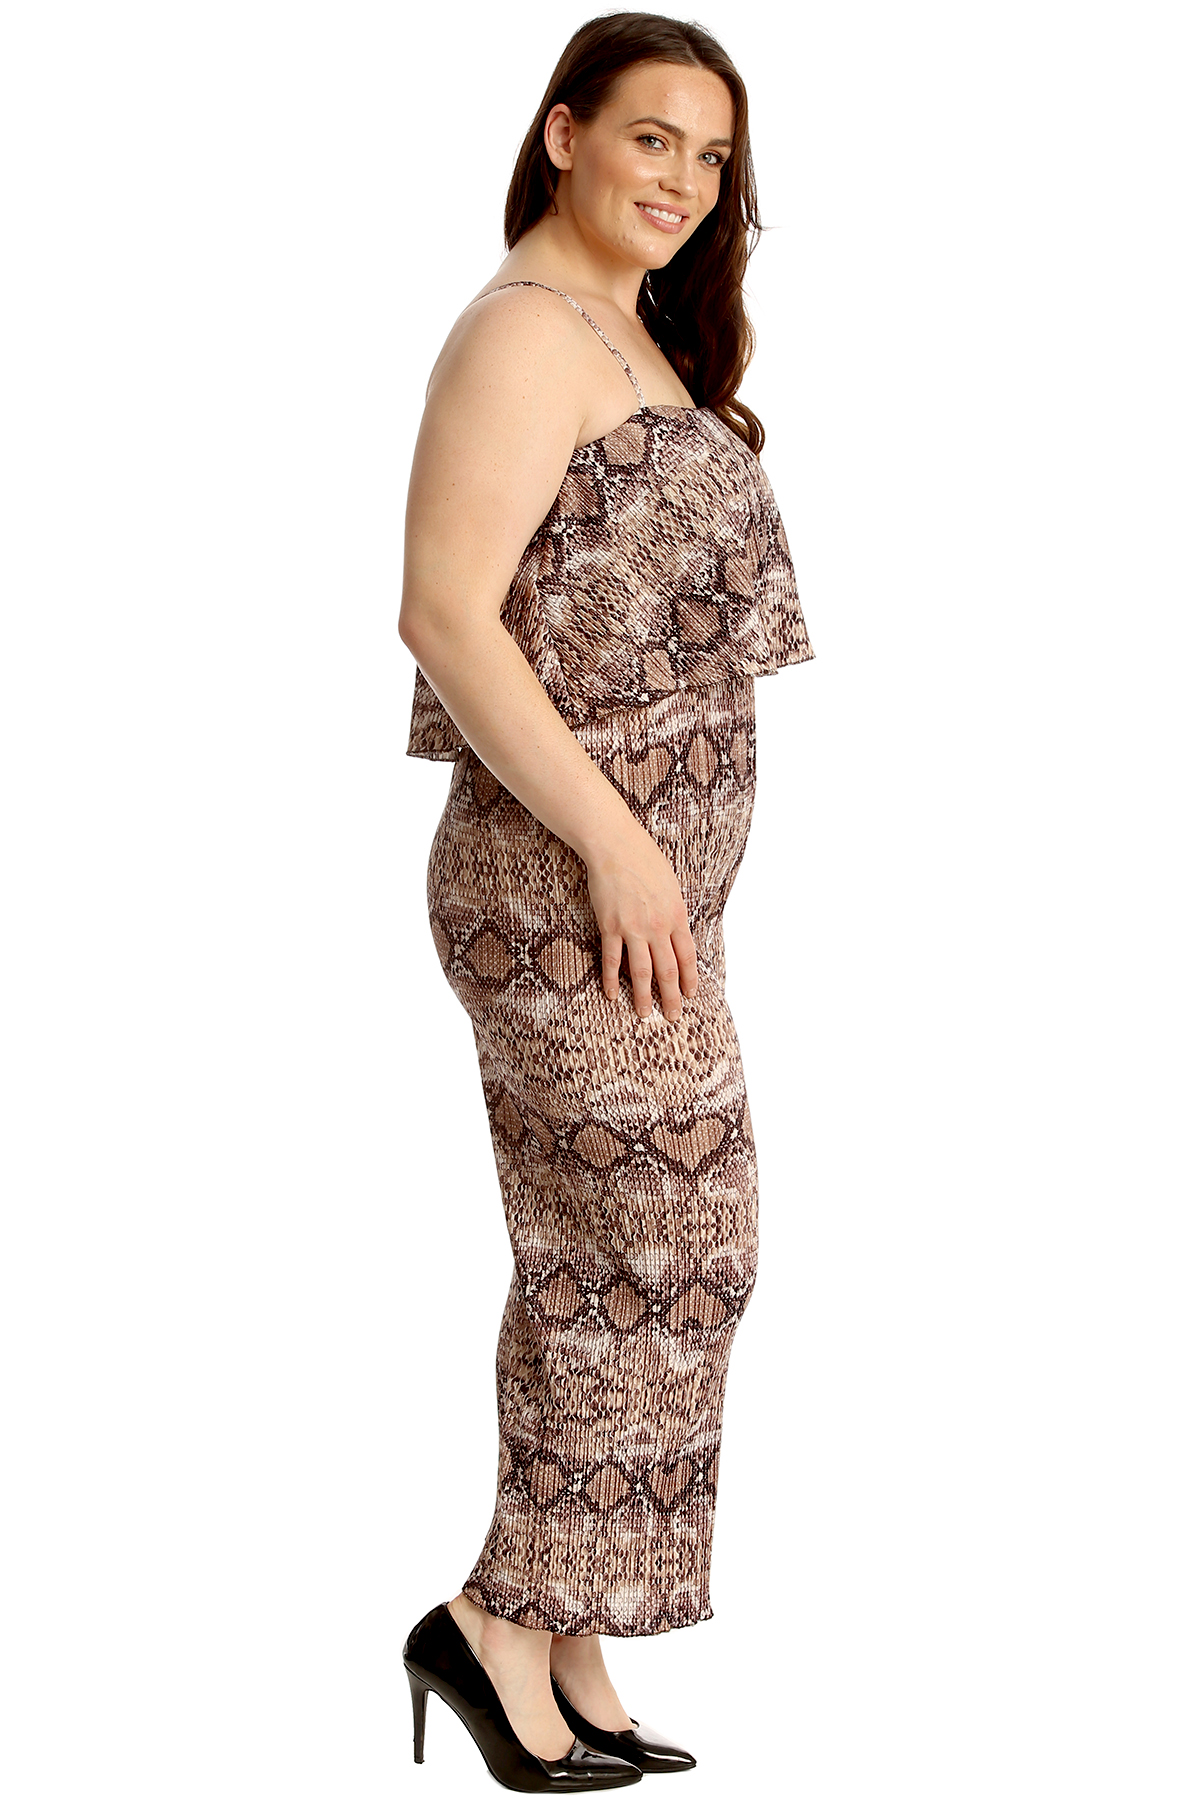 New Womens Plus Size Jumpsuit Ladies Snake Skin Print Frill Top Sleeveless Party